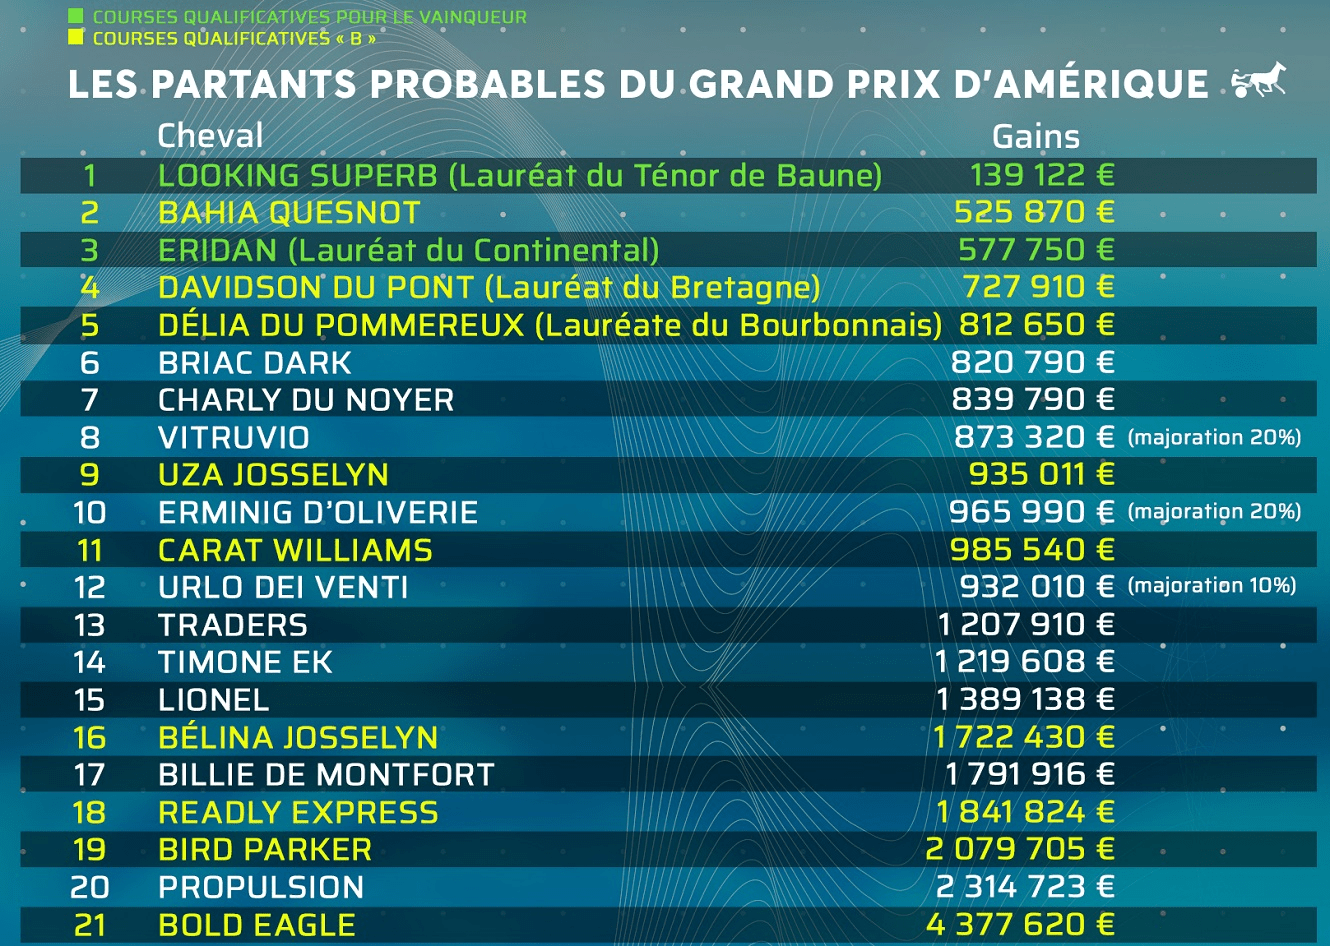 les-partants-probables-du-gpa-jpg.png